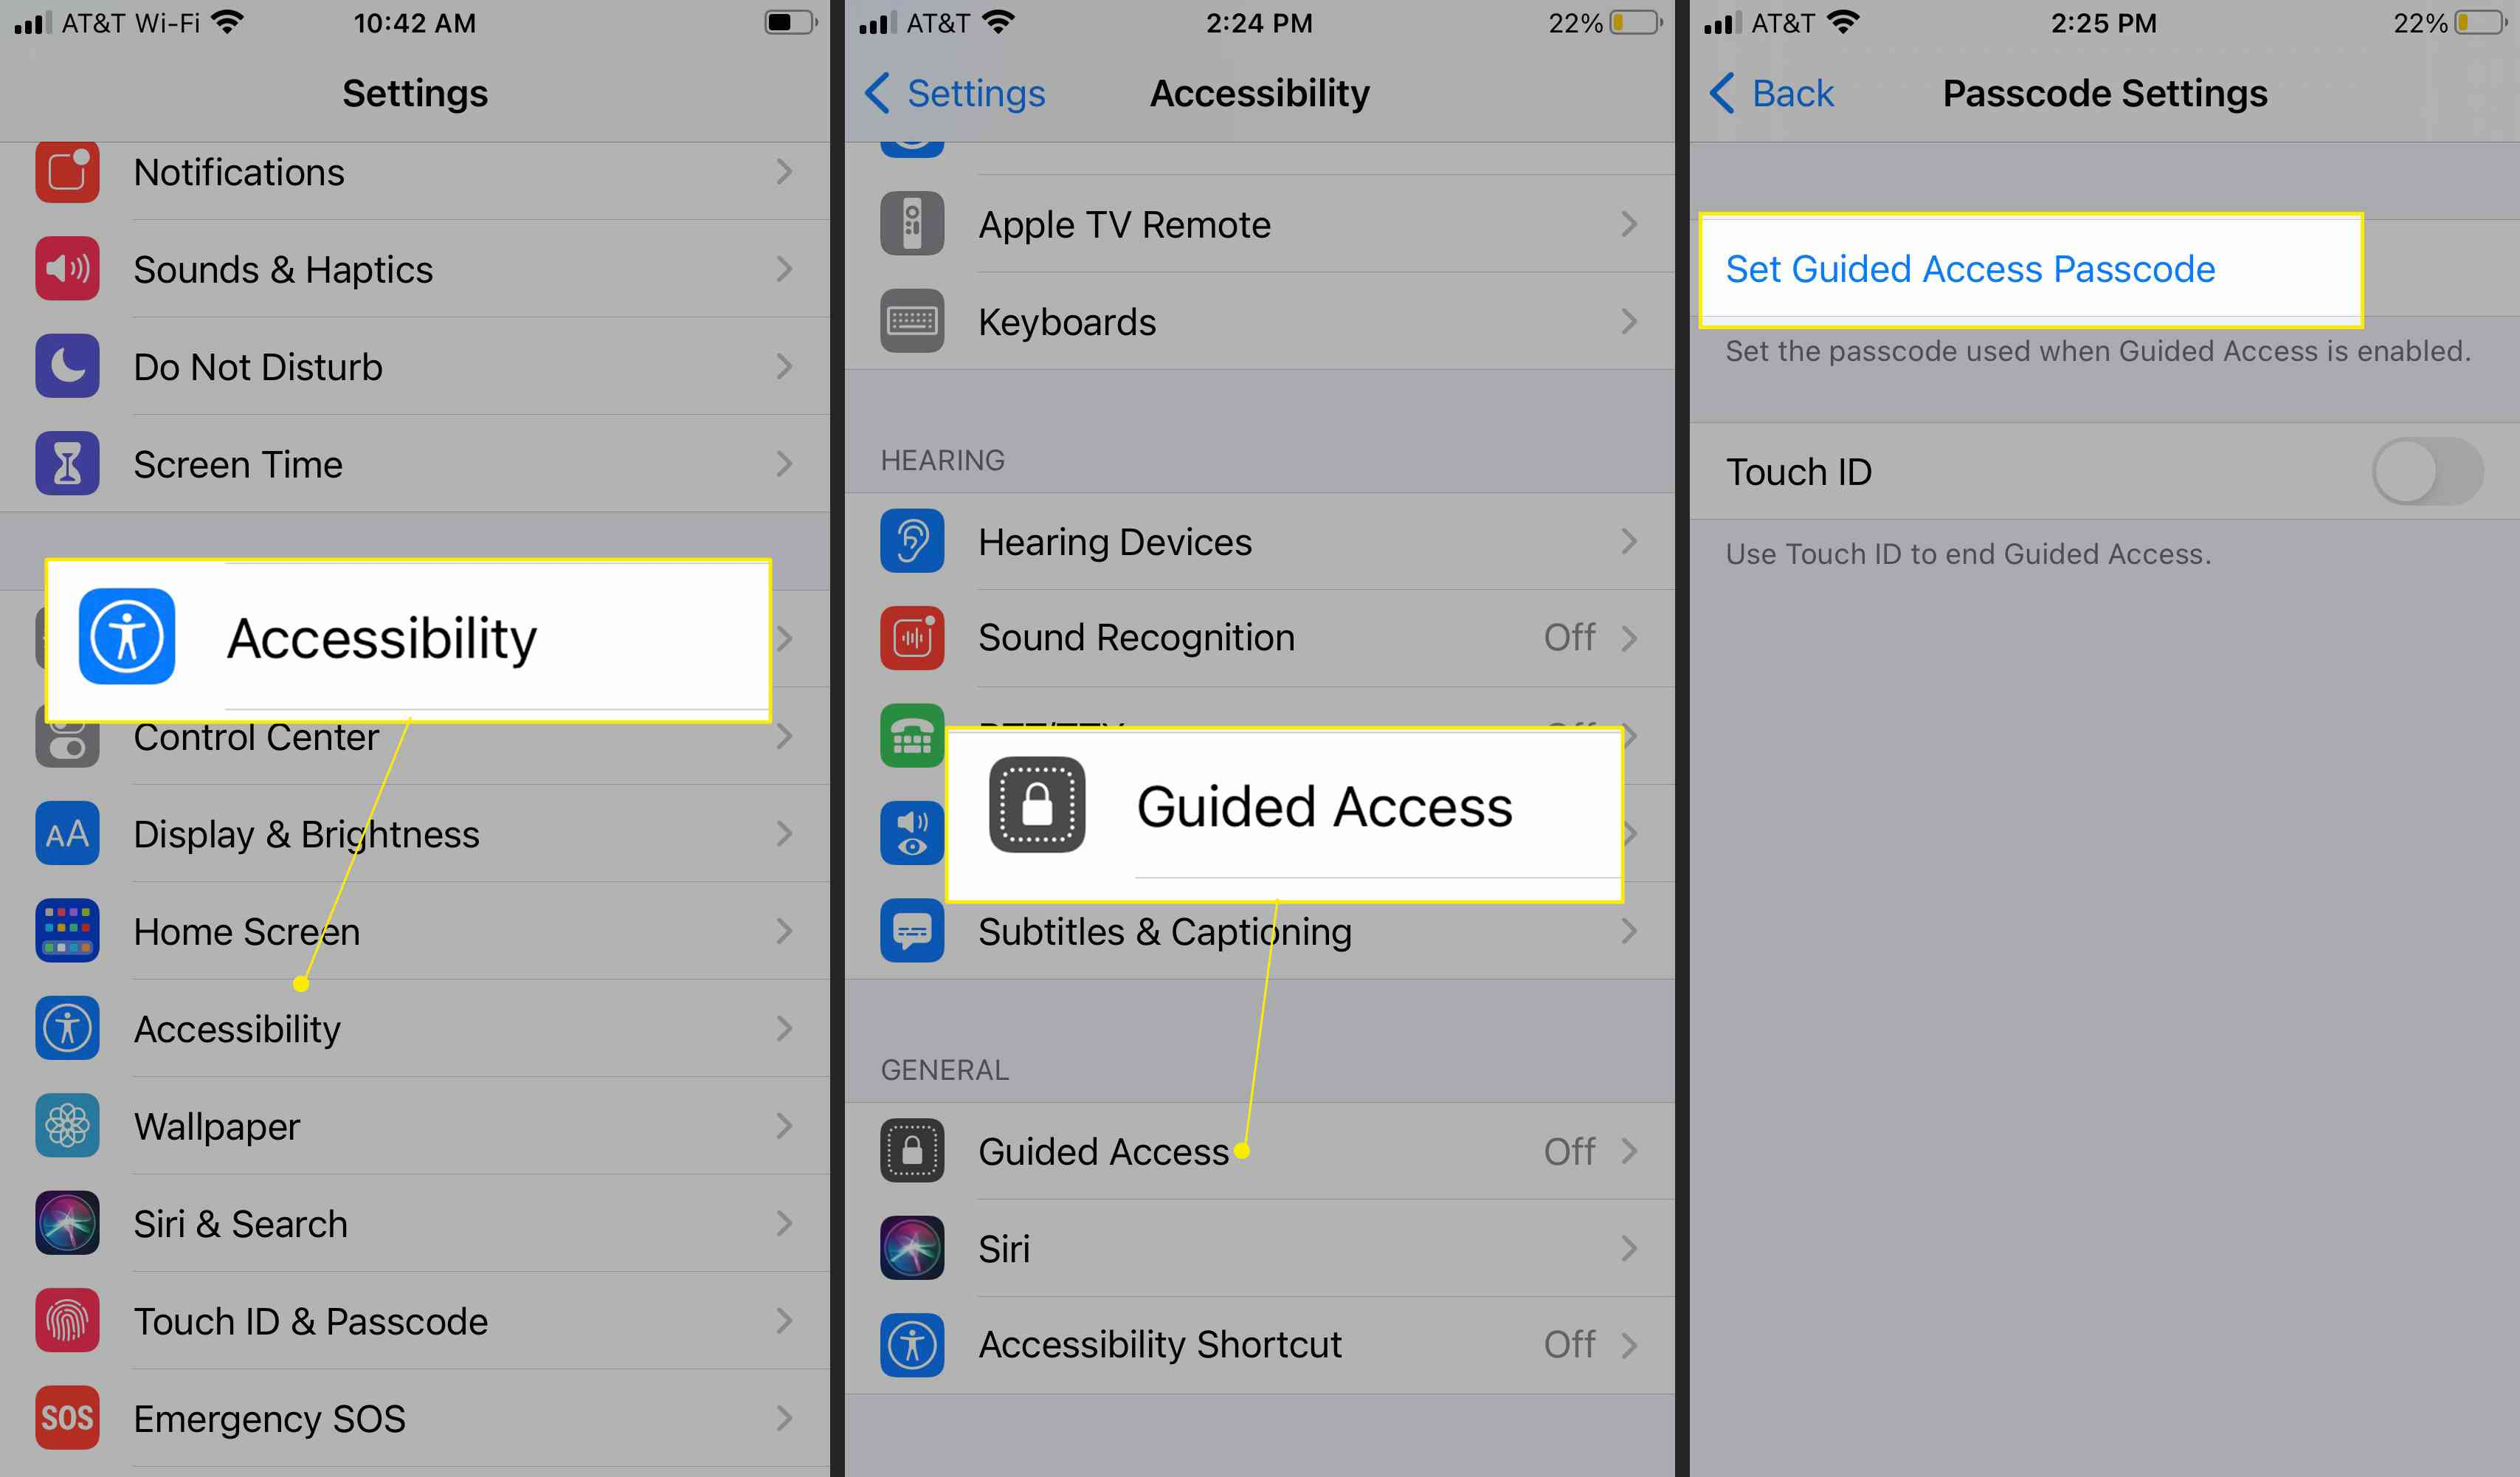 Accessibility Settings with Guided Access and